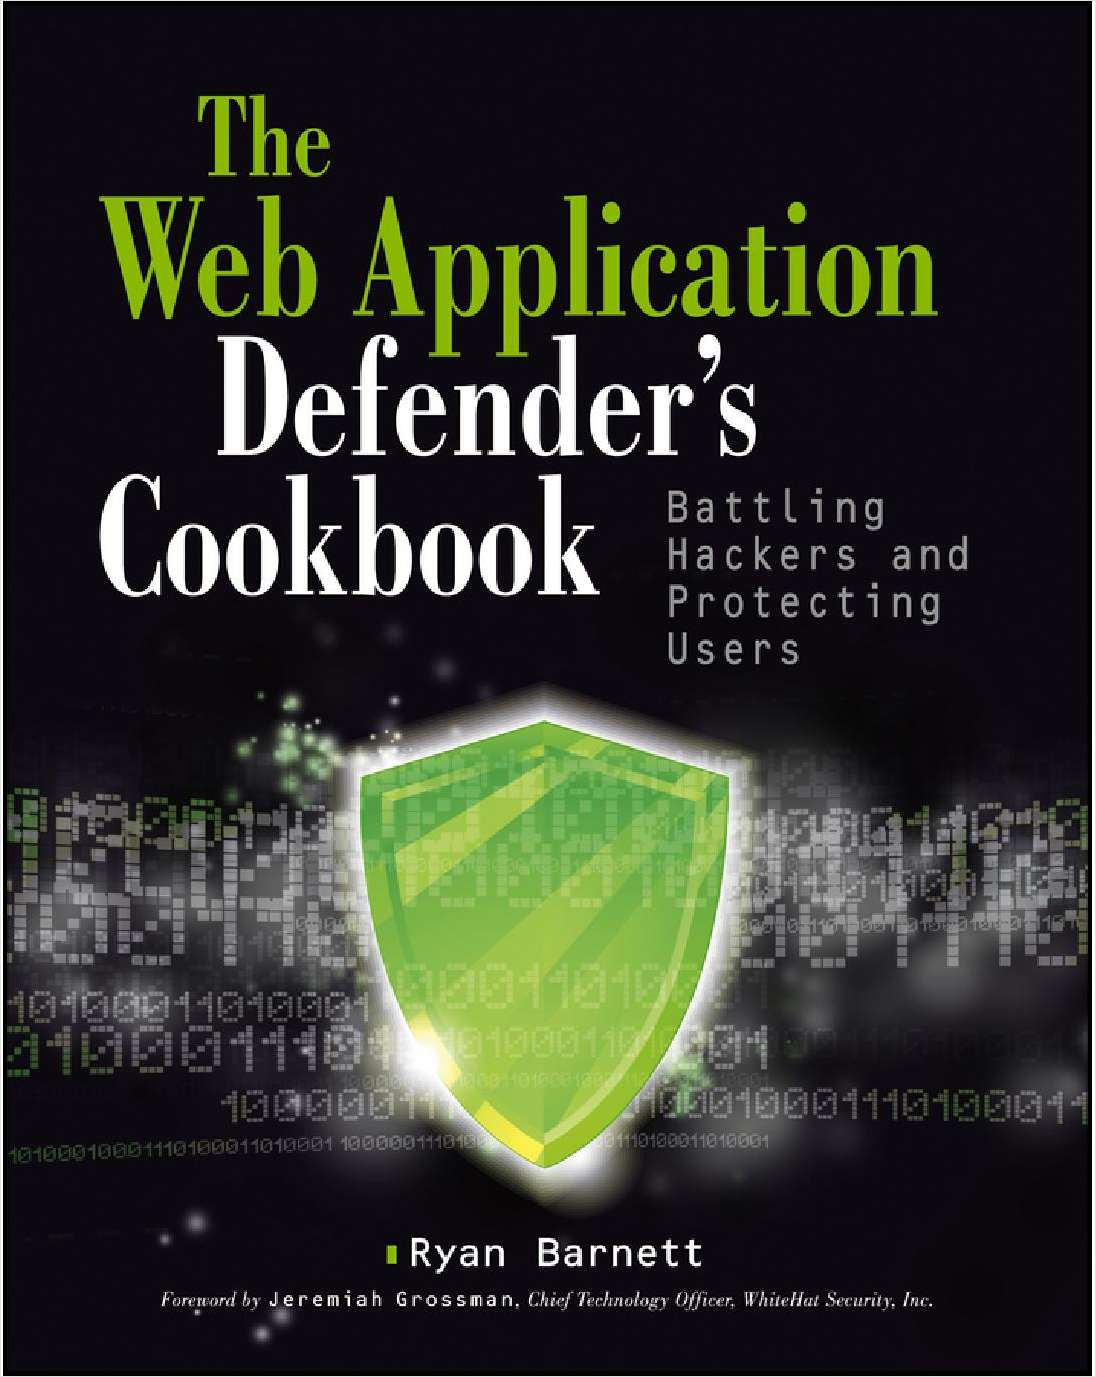 Web Application Defender's Cookbook: Battling Hackers and Protecting Users--Free Sample Chapter